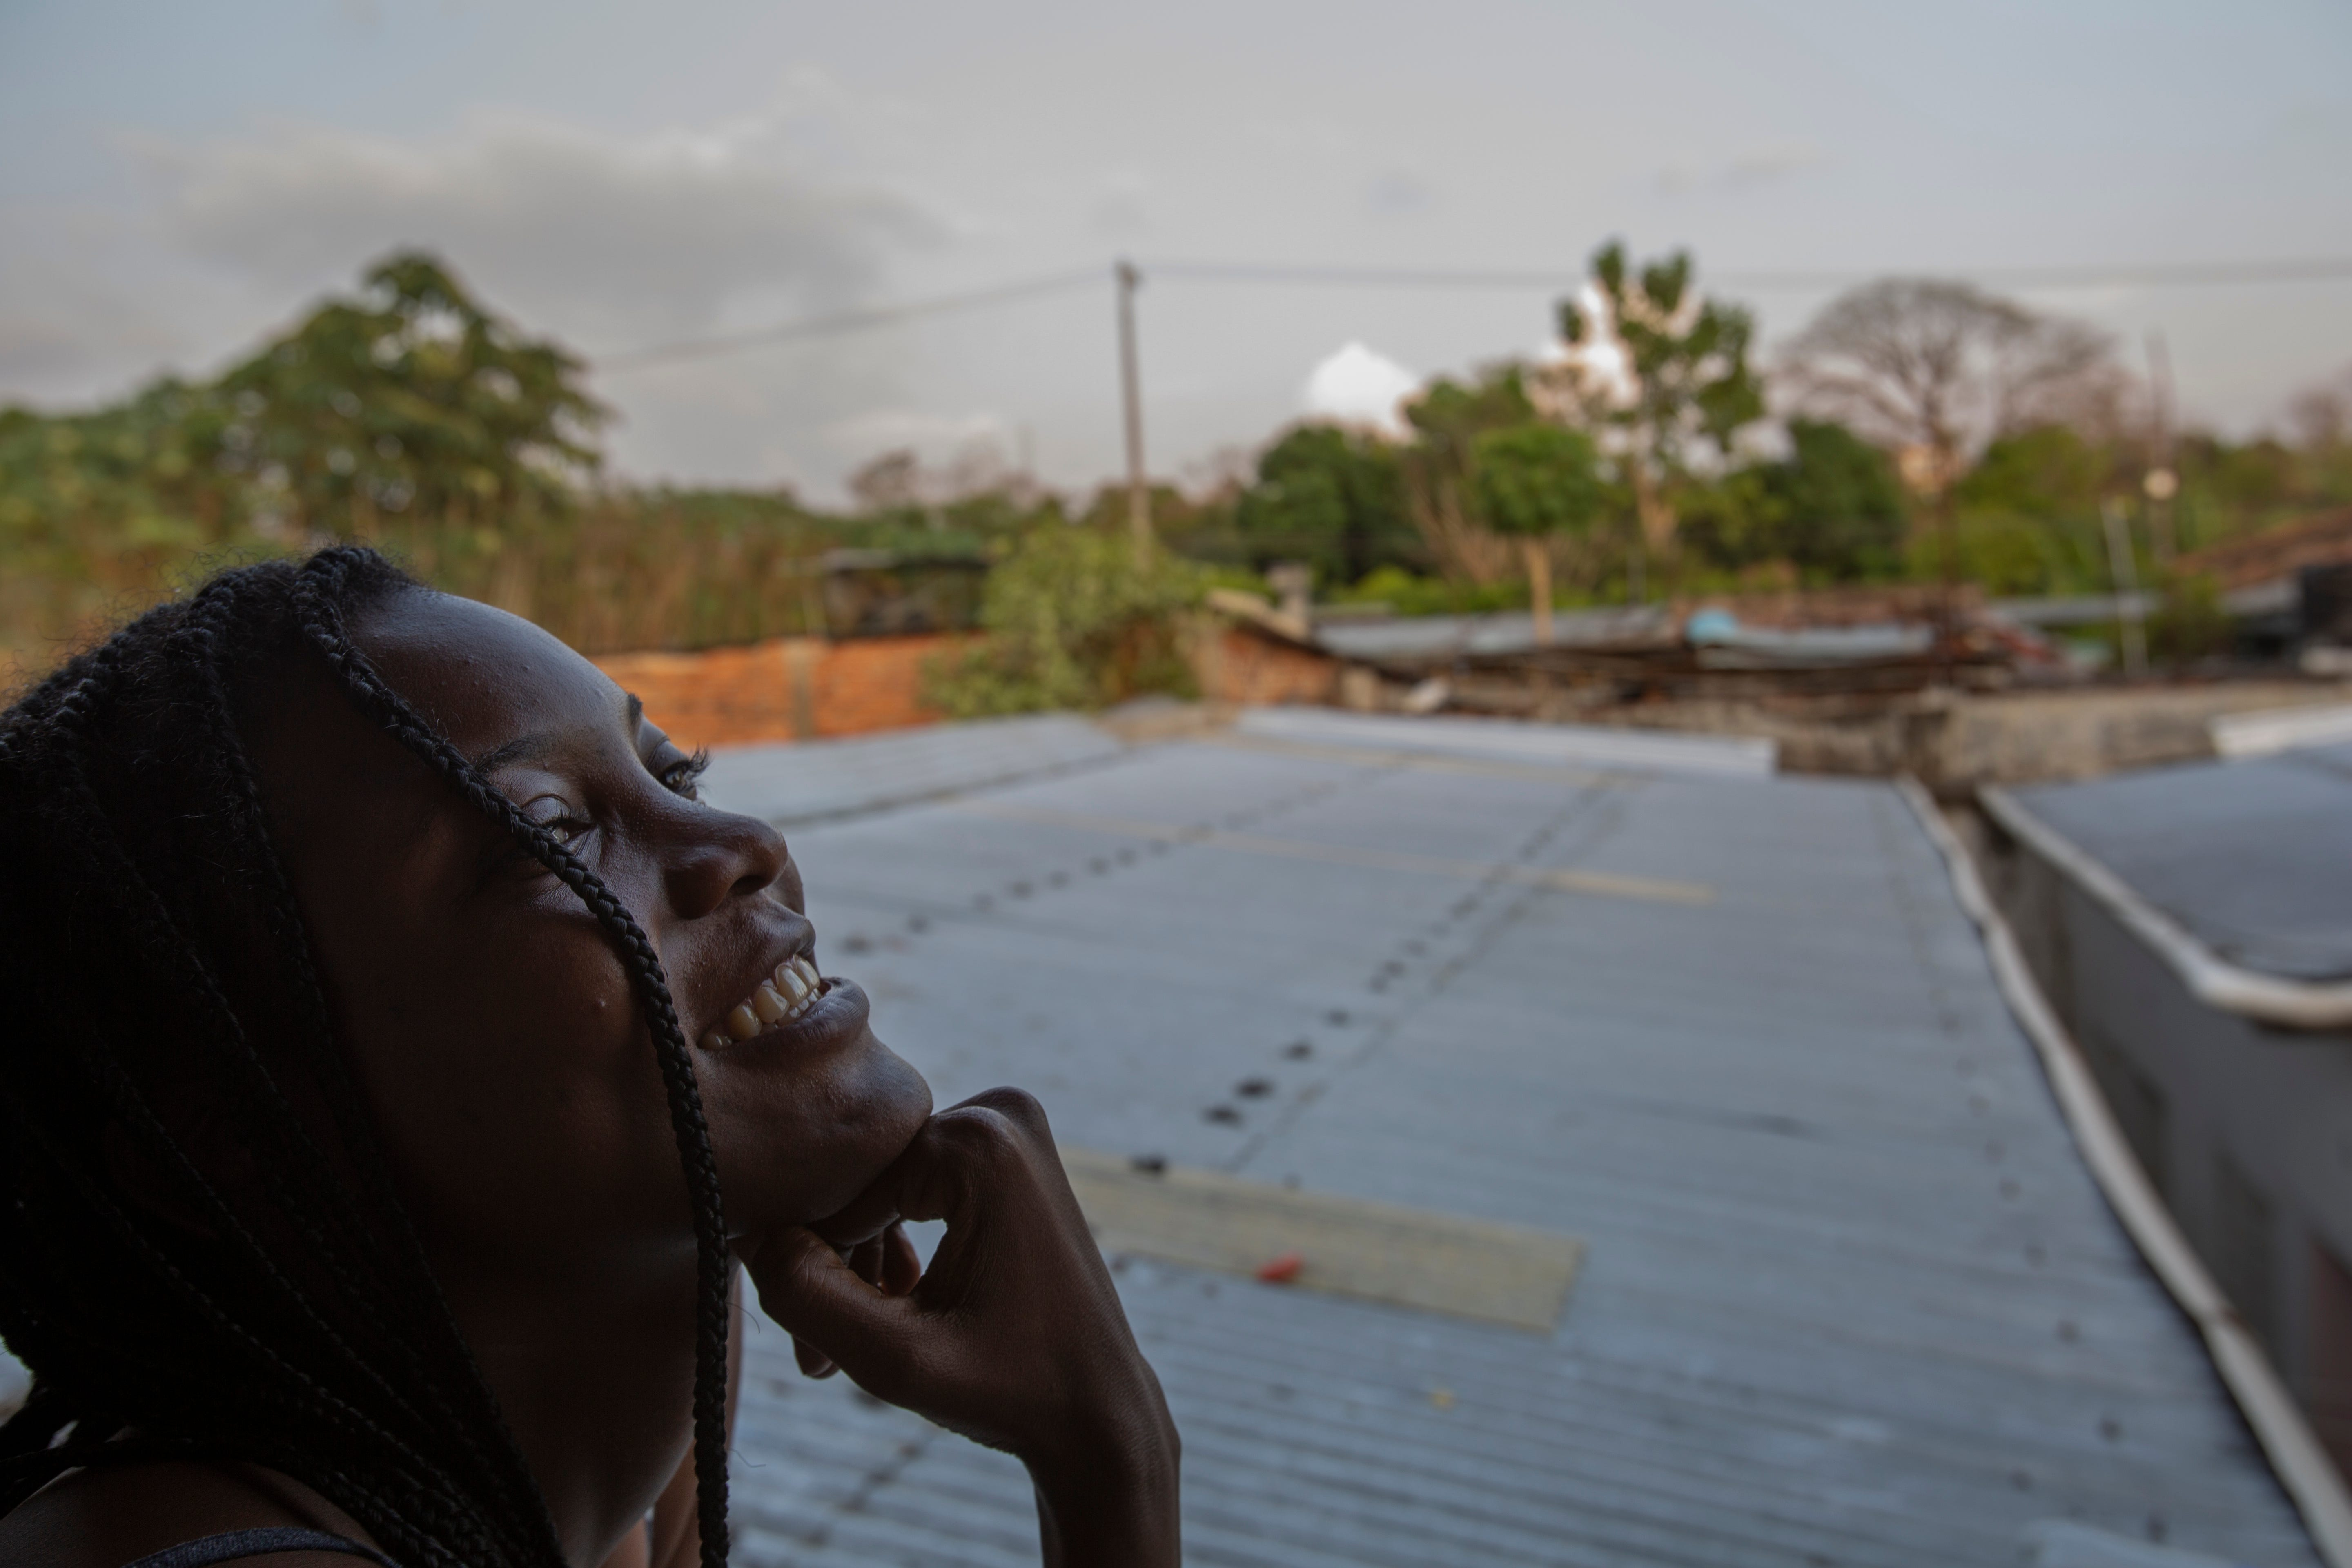 Briyanne Jeanniton, a 22-year-old Haitian migrant, is waiting in Tapachula, Chiapas, for asylum. She traveled from Chile and has aspirations to study to be a nurse.